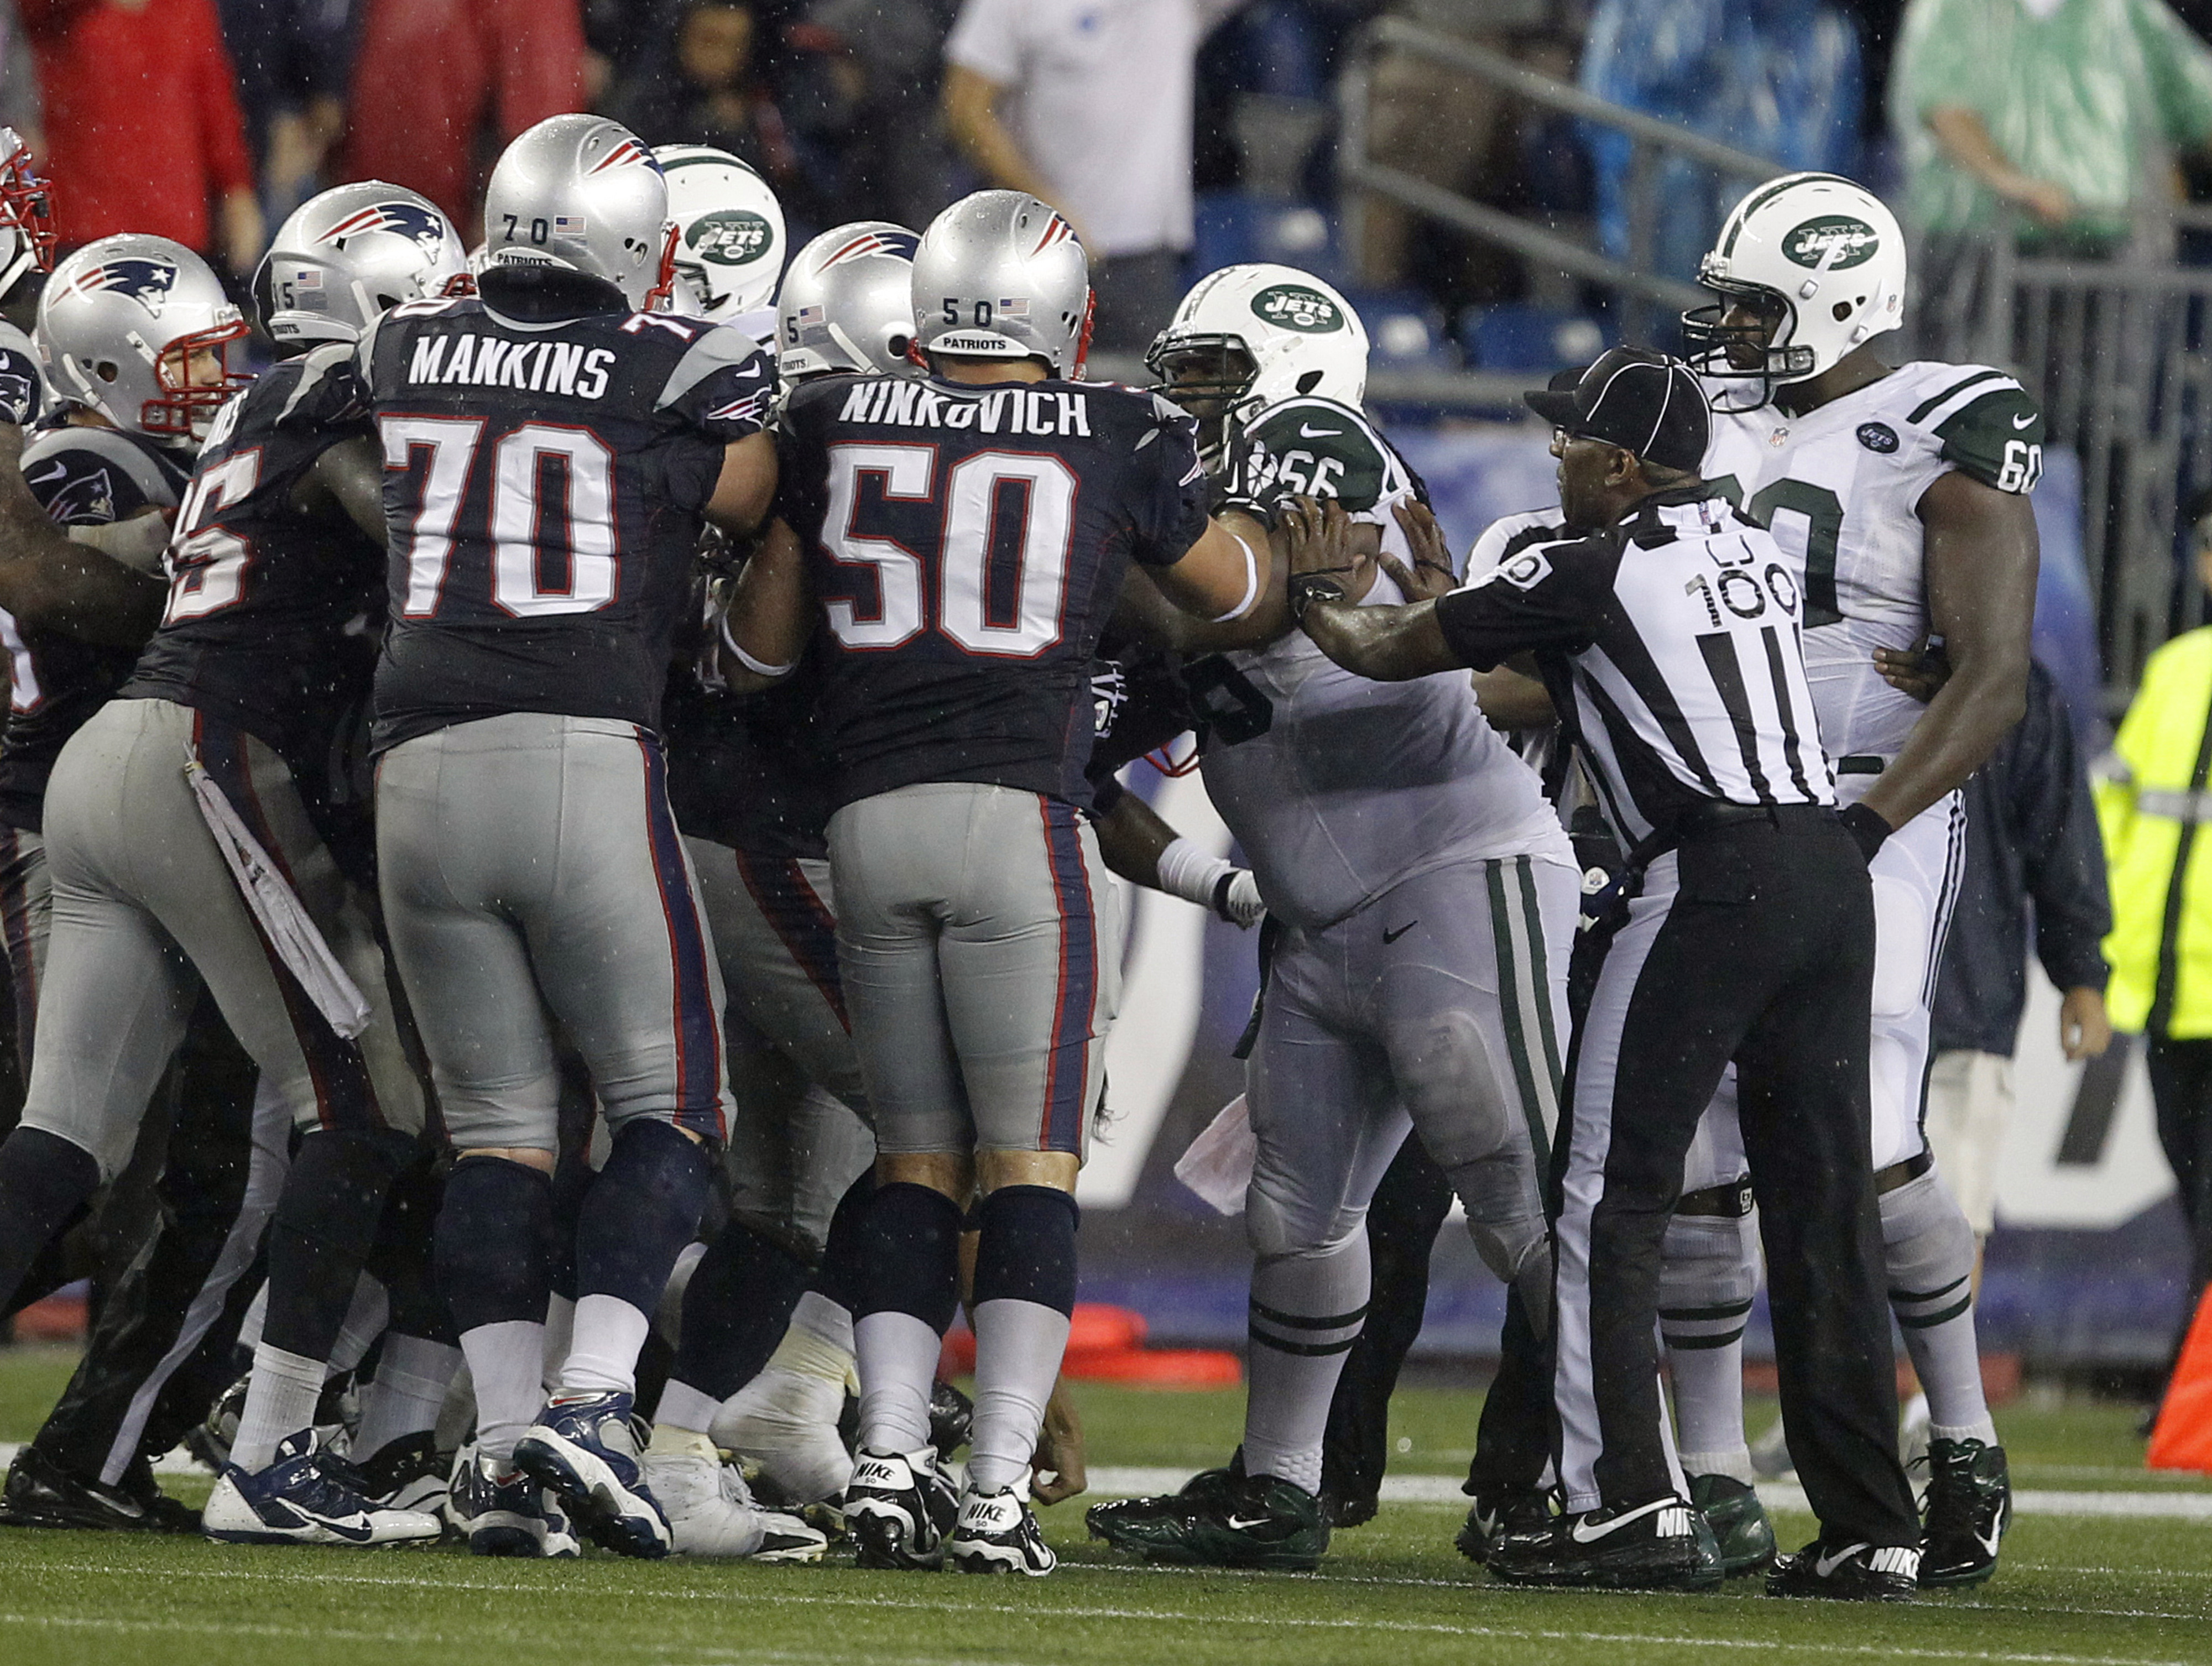 Jets vs. Patriots fight: Fines expected, suspensions unlikely